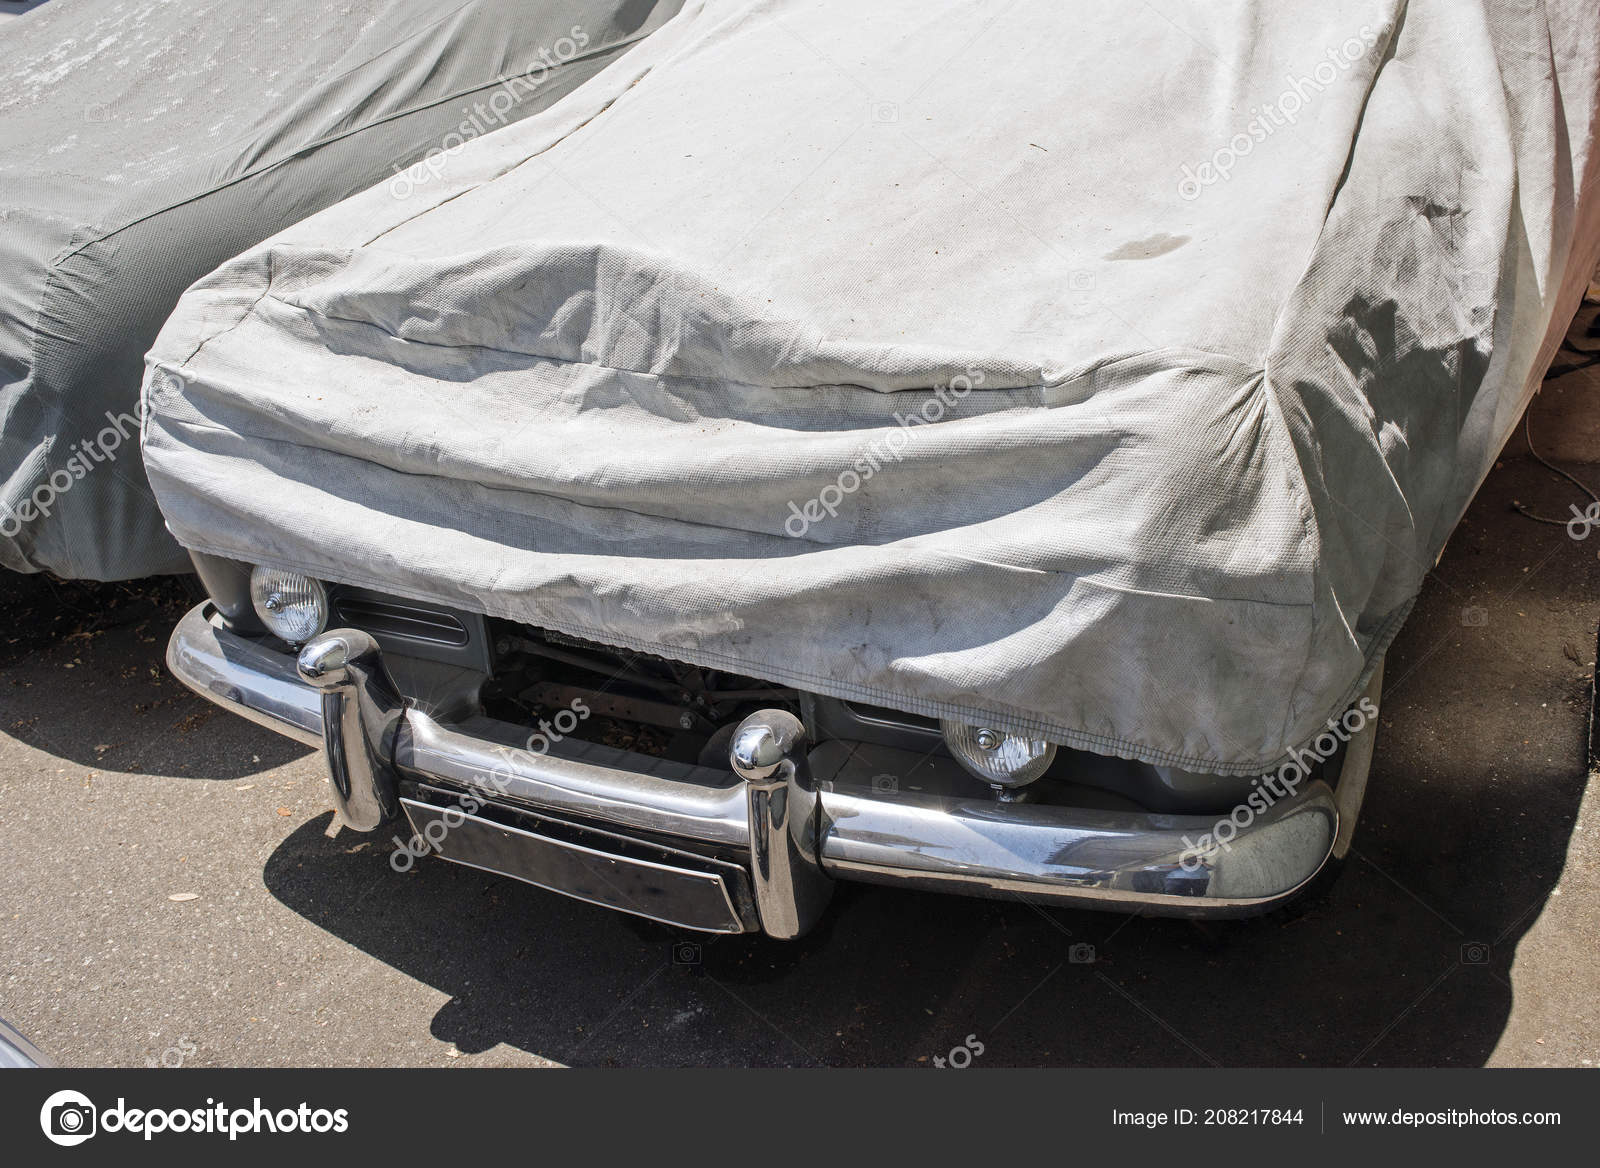 Wrapped Car Street Summer — Stock Photo © coolimagesco #208217844